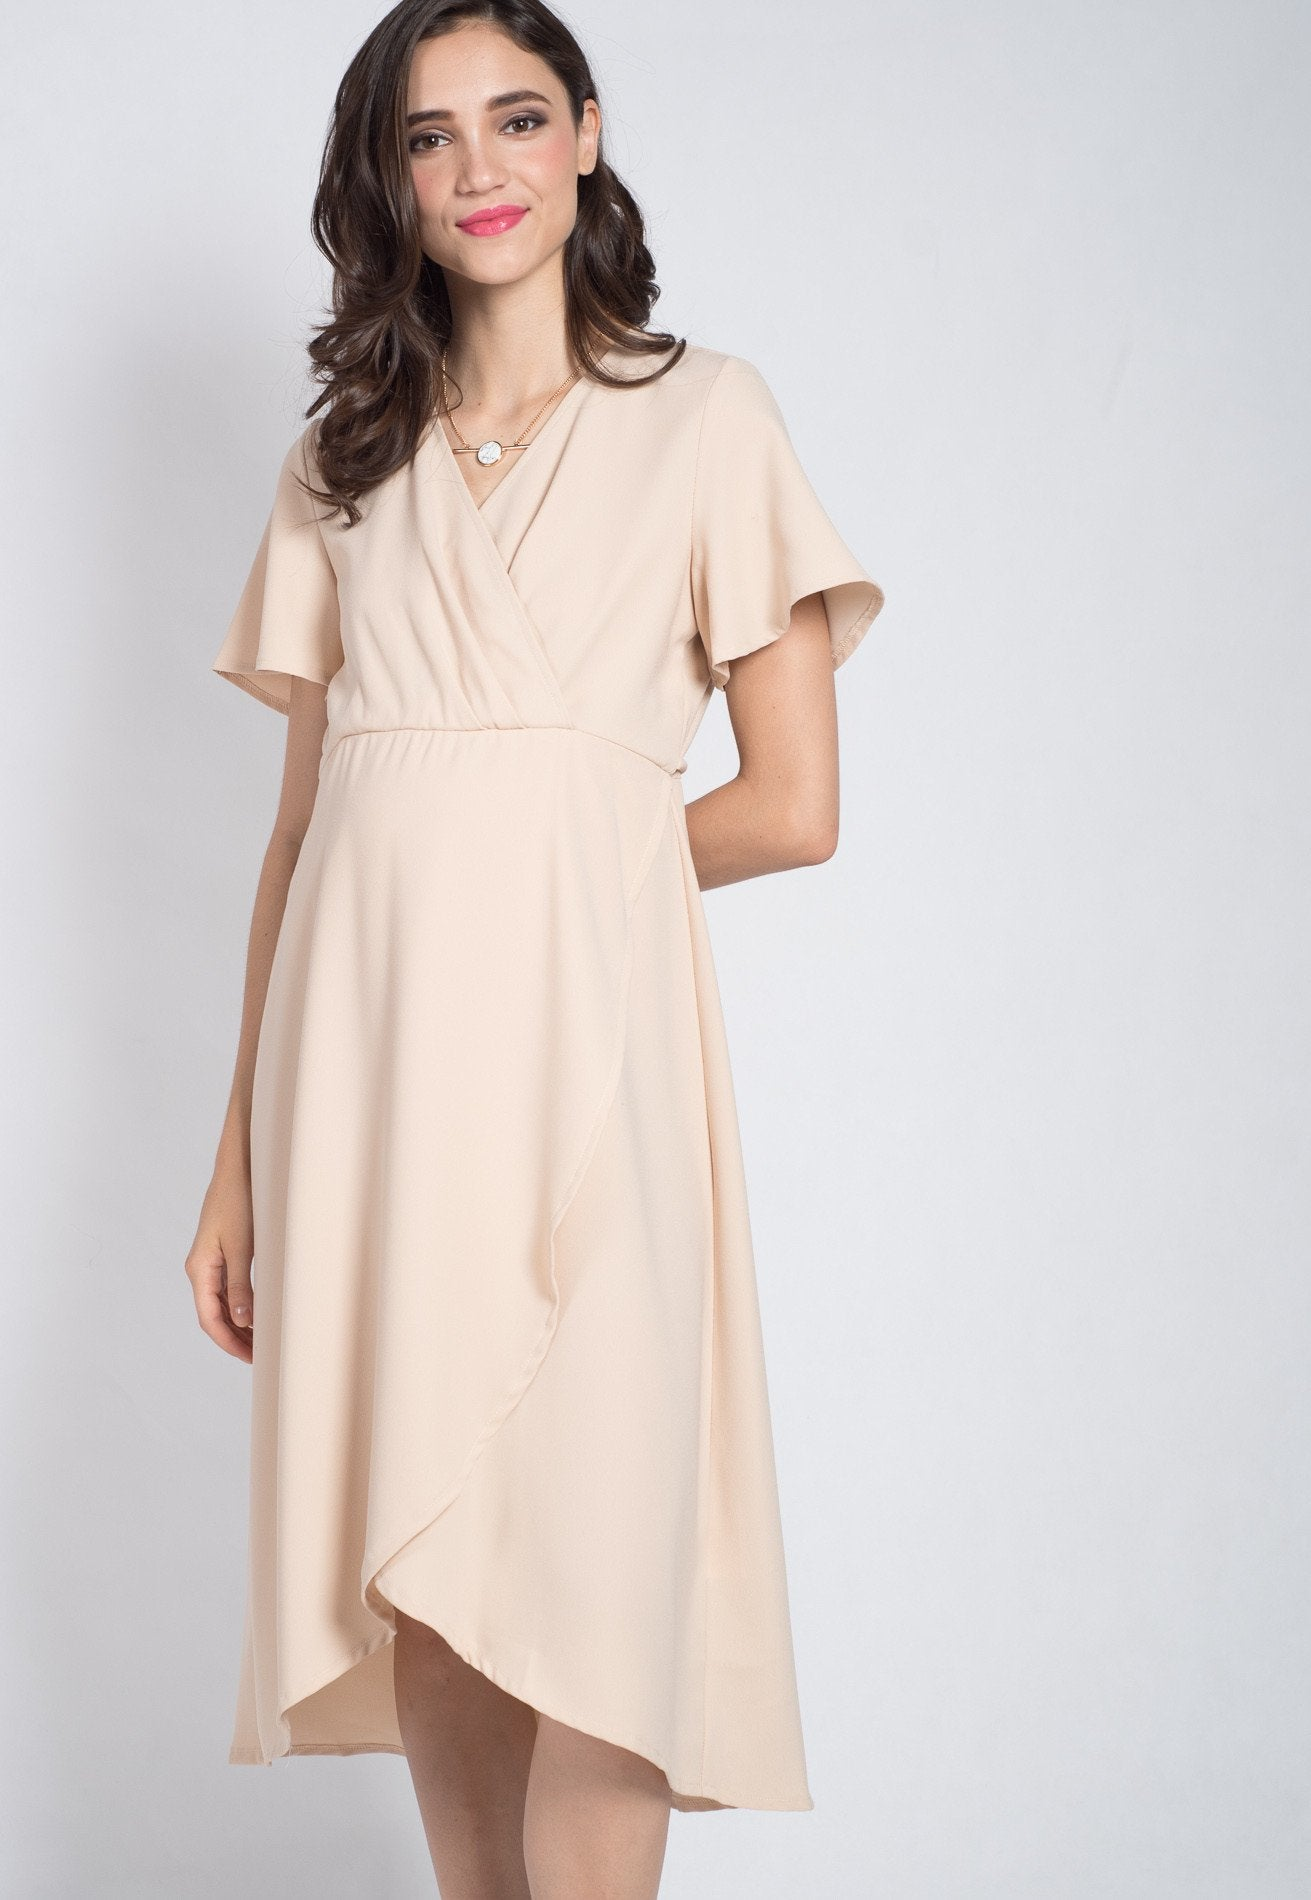 Mothercot Beige Luciana Office Nursing Dress  by JumpEatCry - Maternity and nursing wear